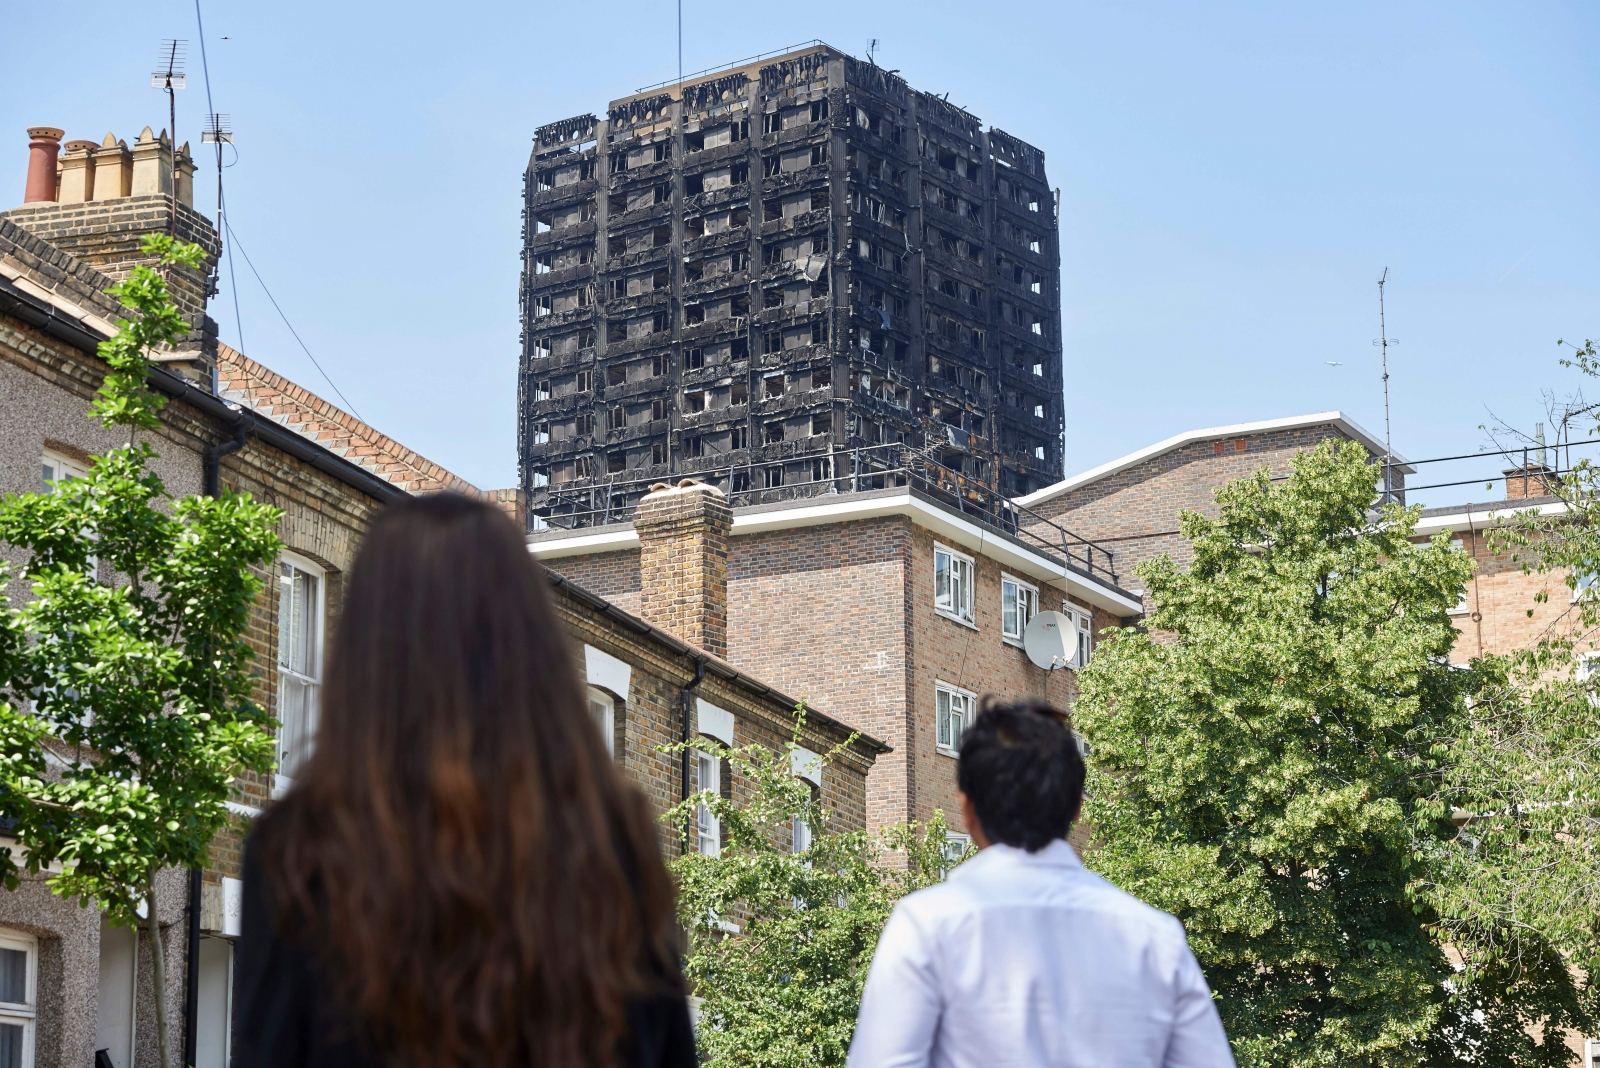 United Kingdom  acquires apartments for tenants displaced by tower fire